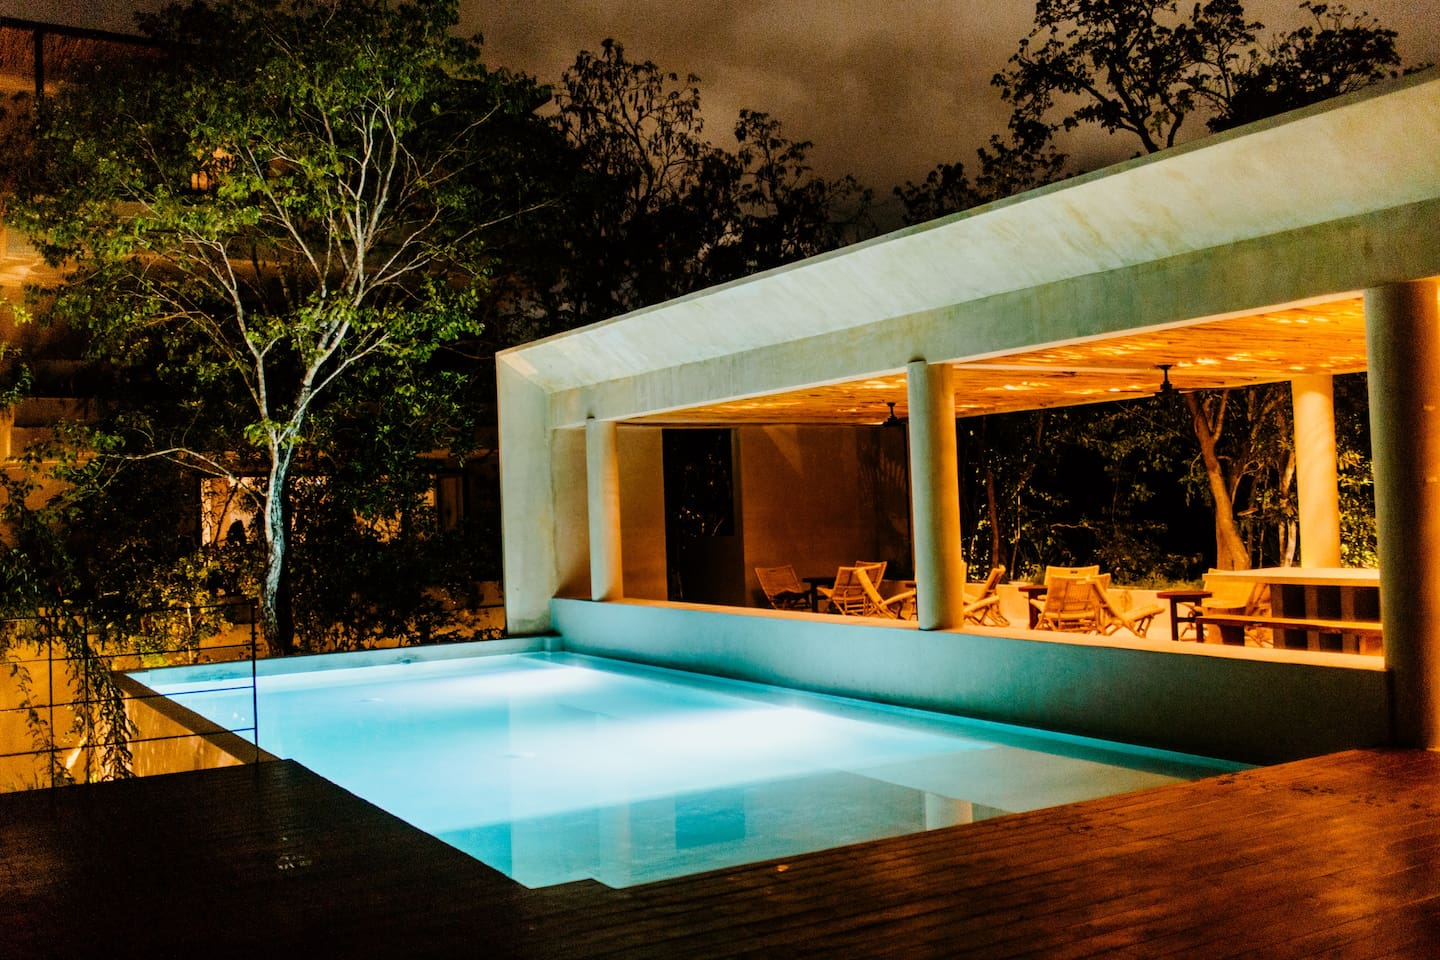 Picture yourself there, night swim in the best pool of Tulum.